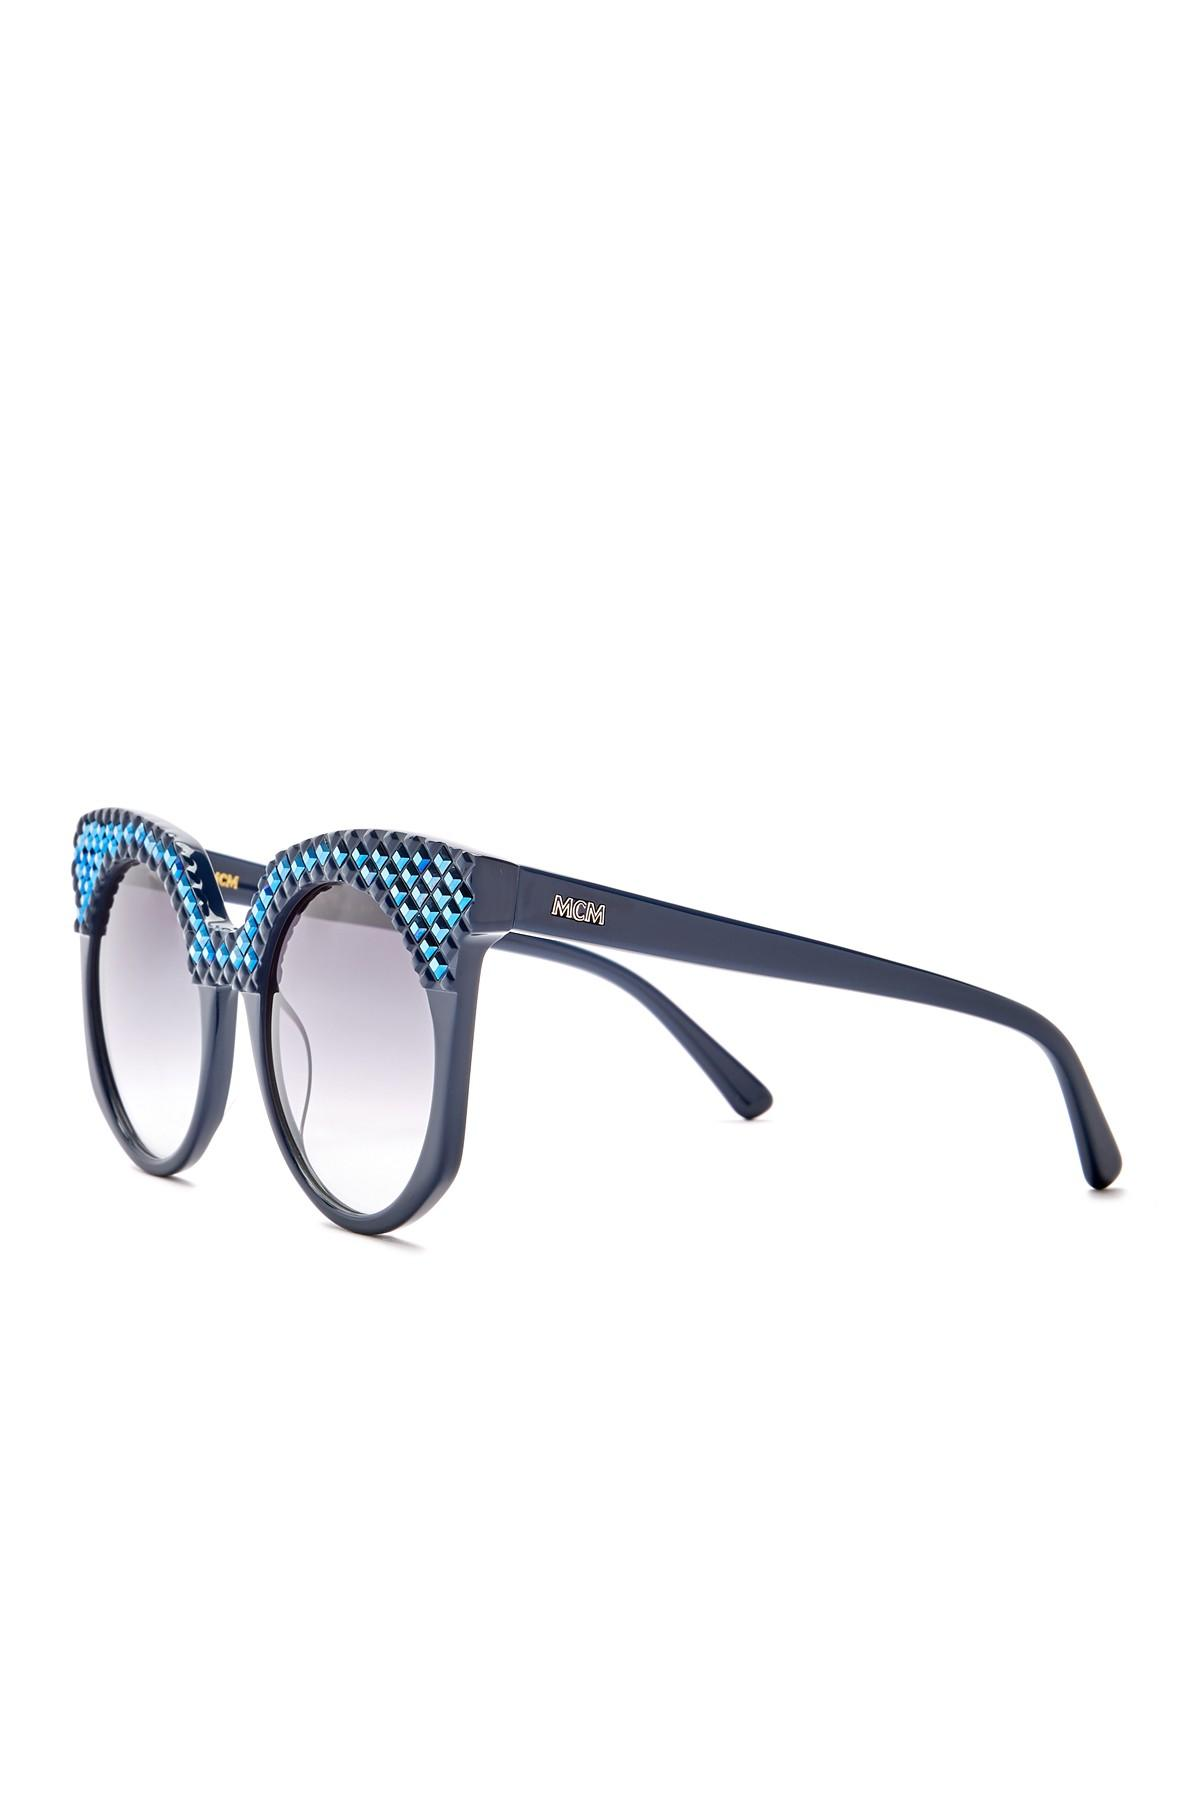 a4db459f1c4f1 MCM - Blue Women s Cat Eye 52mm Acetate Frame Sunglasses - Lyst. View  fullscreen